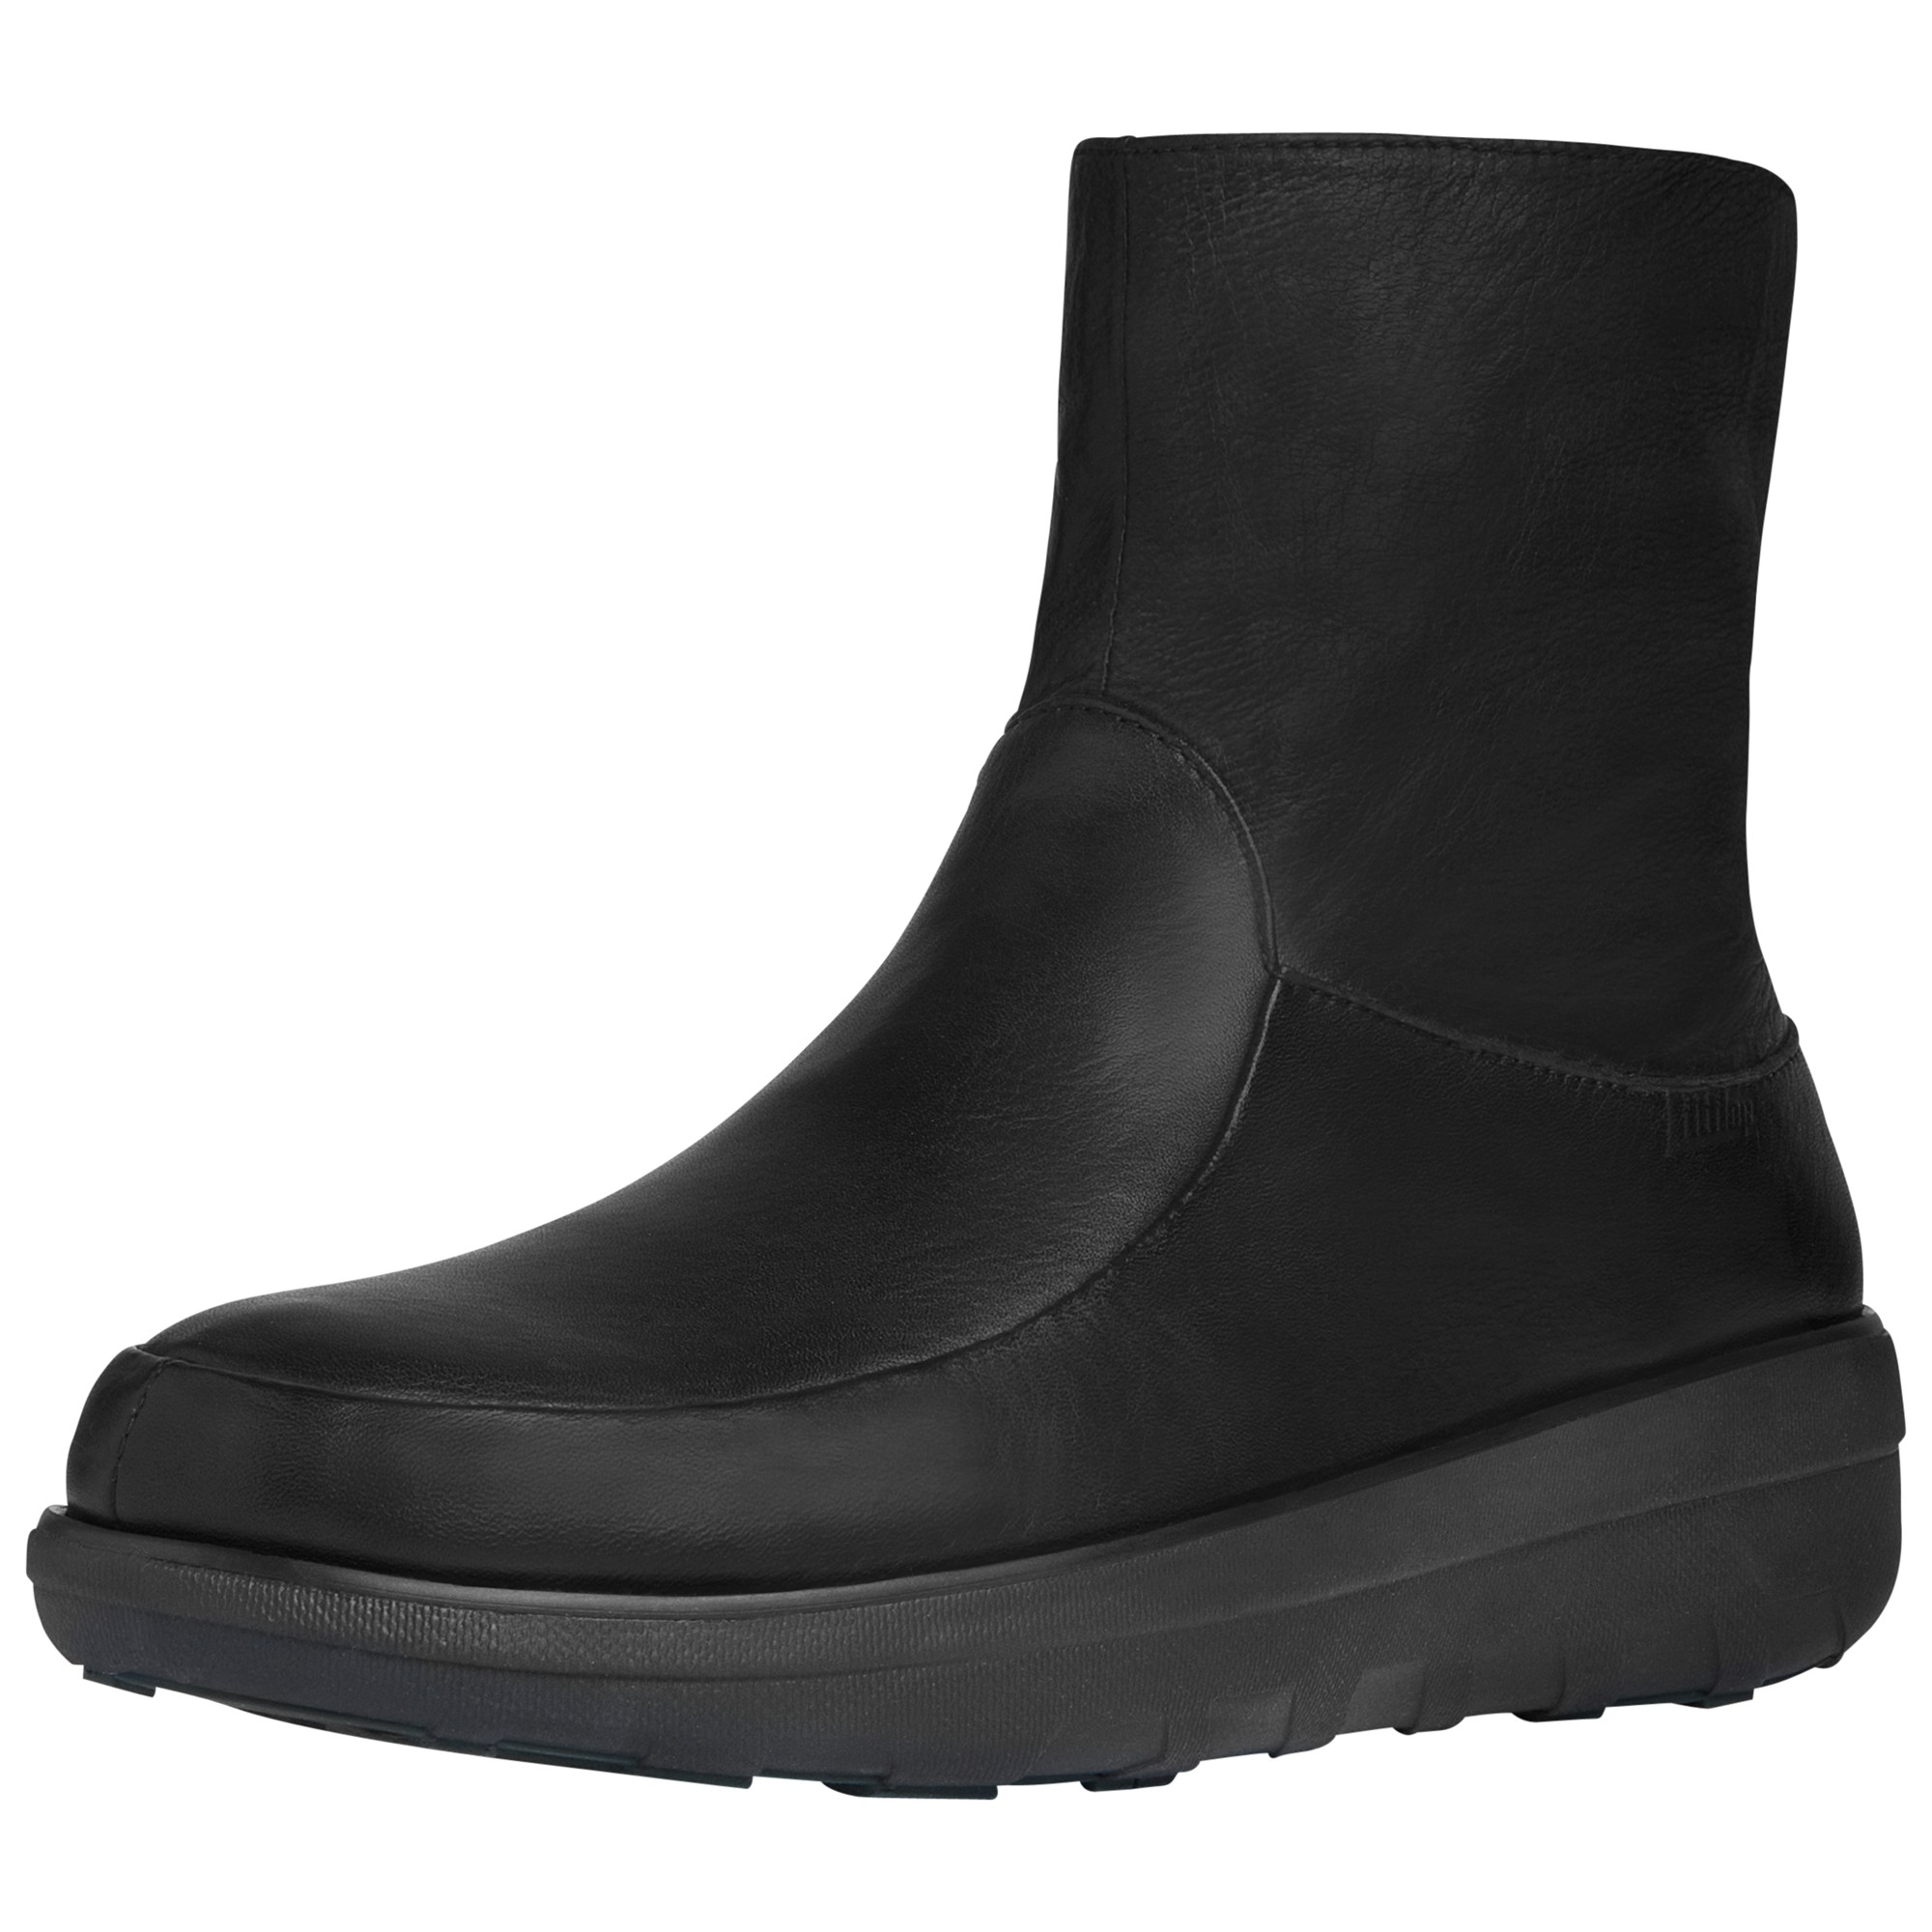 Fitflop Loaff Shorty Ankle Boots in Black